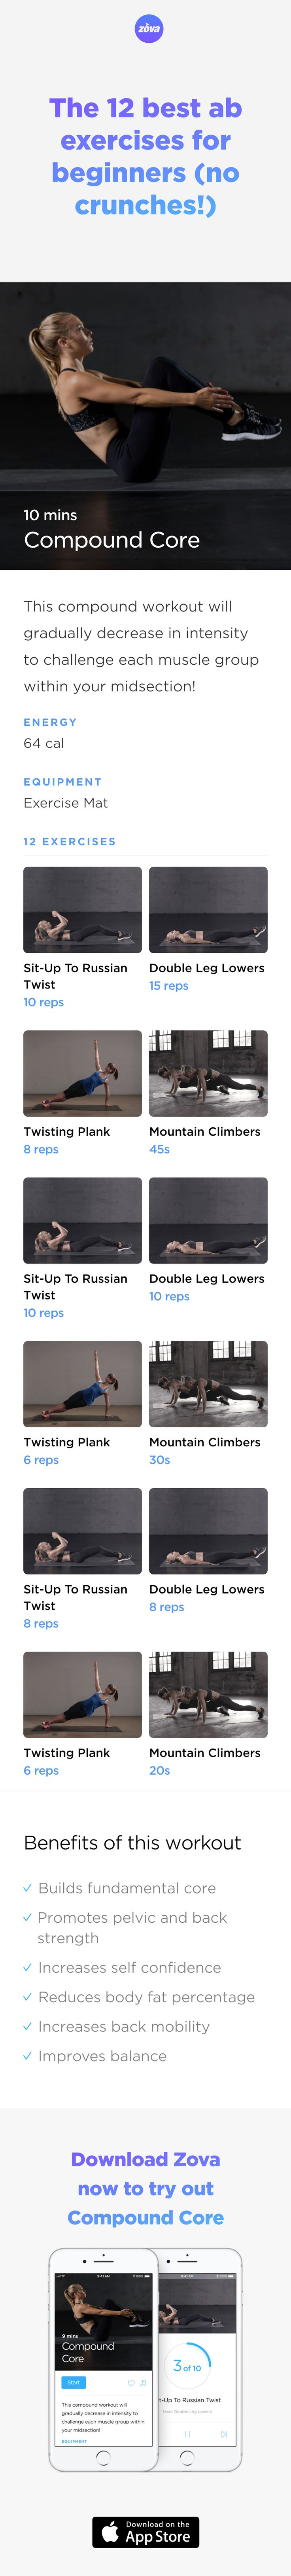 As we already know, building a strong core is the key to a healthy body. By focusing on core stabilising exercises, you'll be able to sculpt your lower abs more easily and effectively. These ab exercises are specially designed for beginners and will help you tone up and build the core strength you need. #abs #fitness #workout